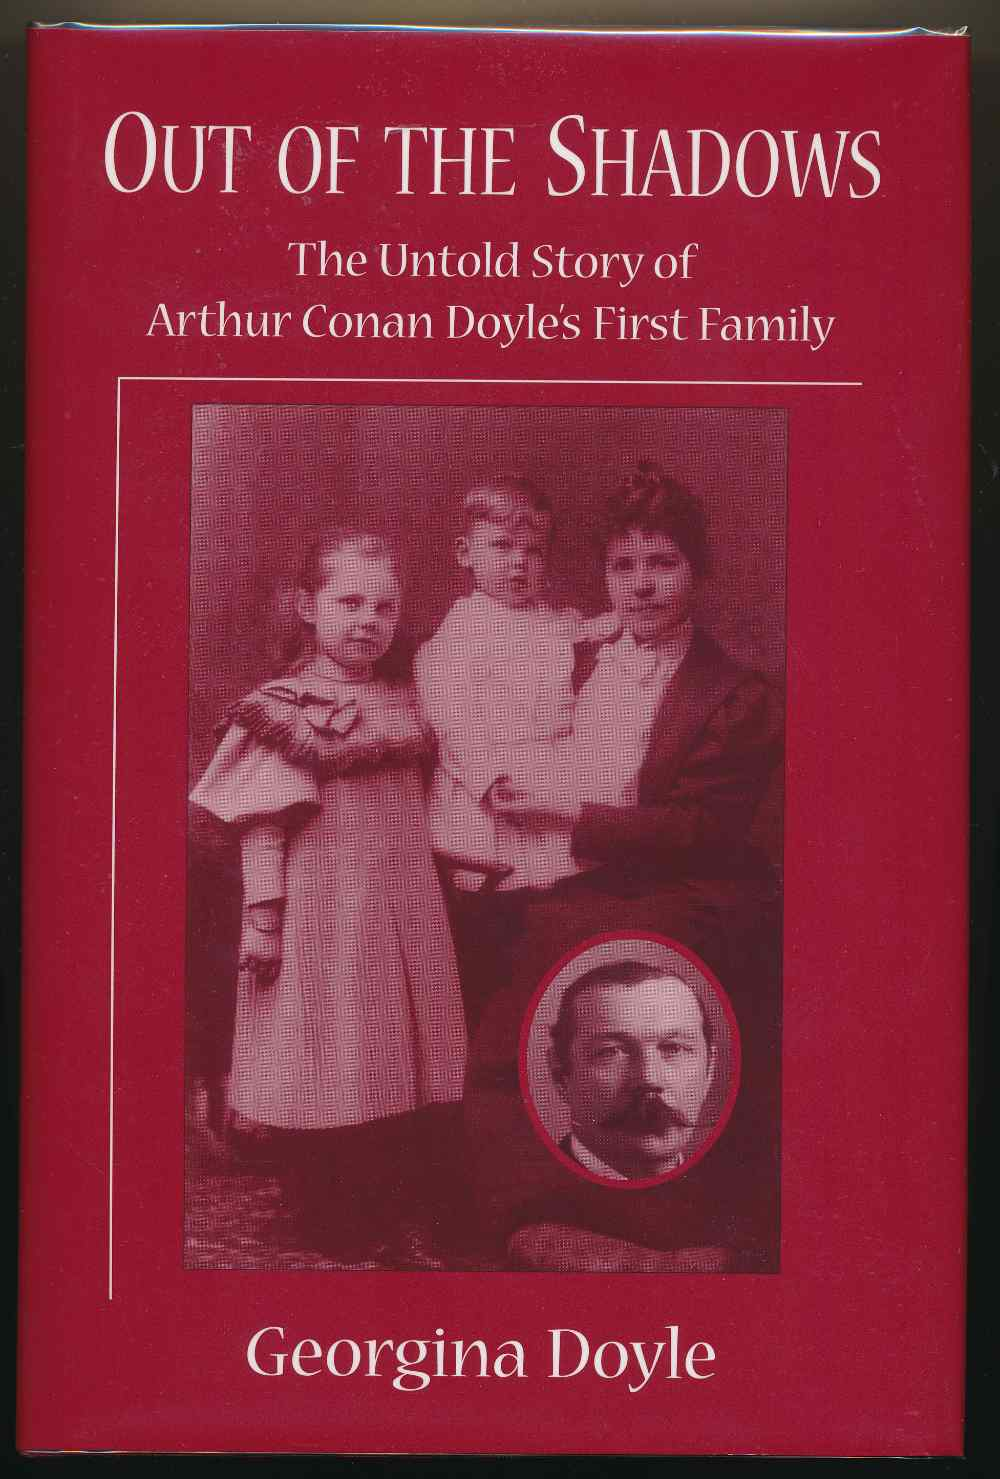 Out of the shadows : the untold story of Arthur Conan Doyle's first family